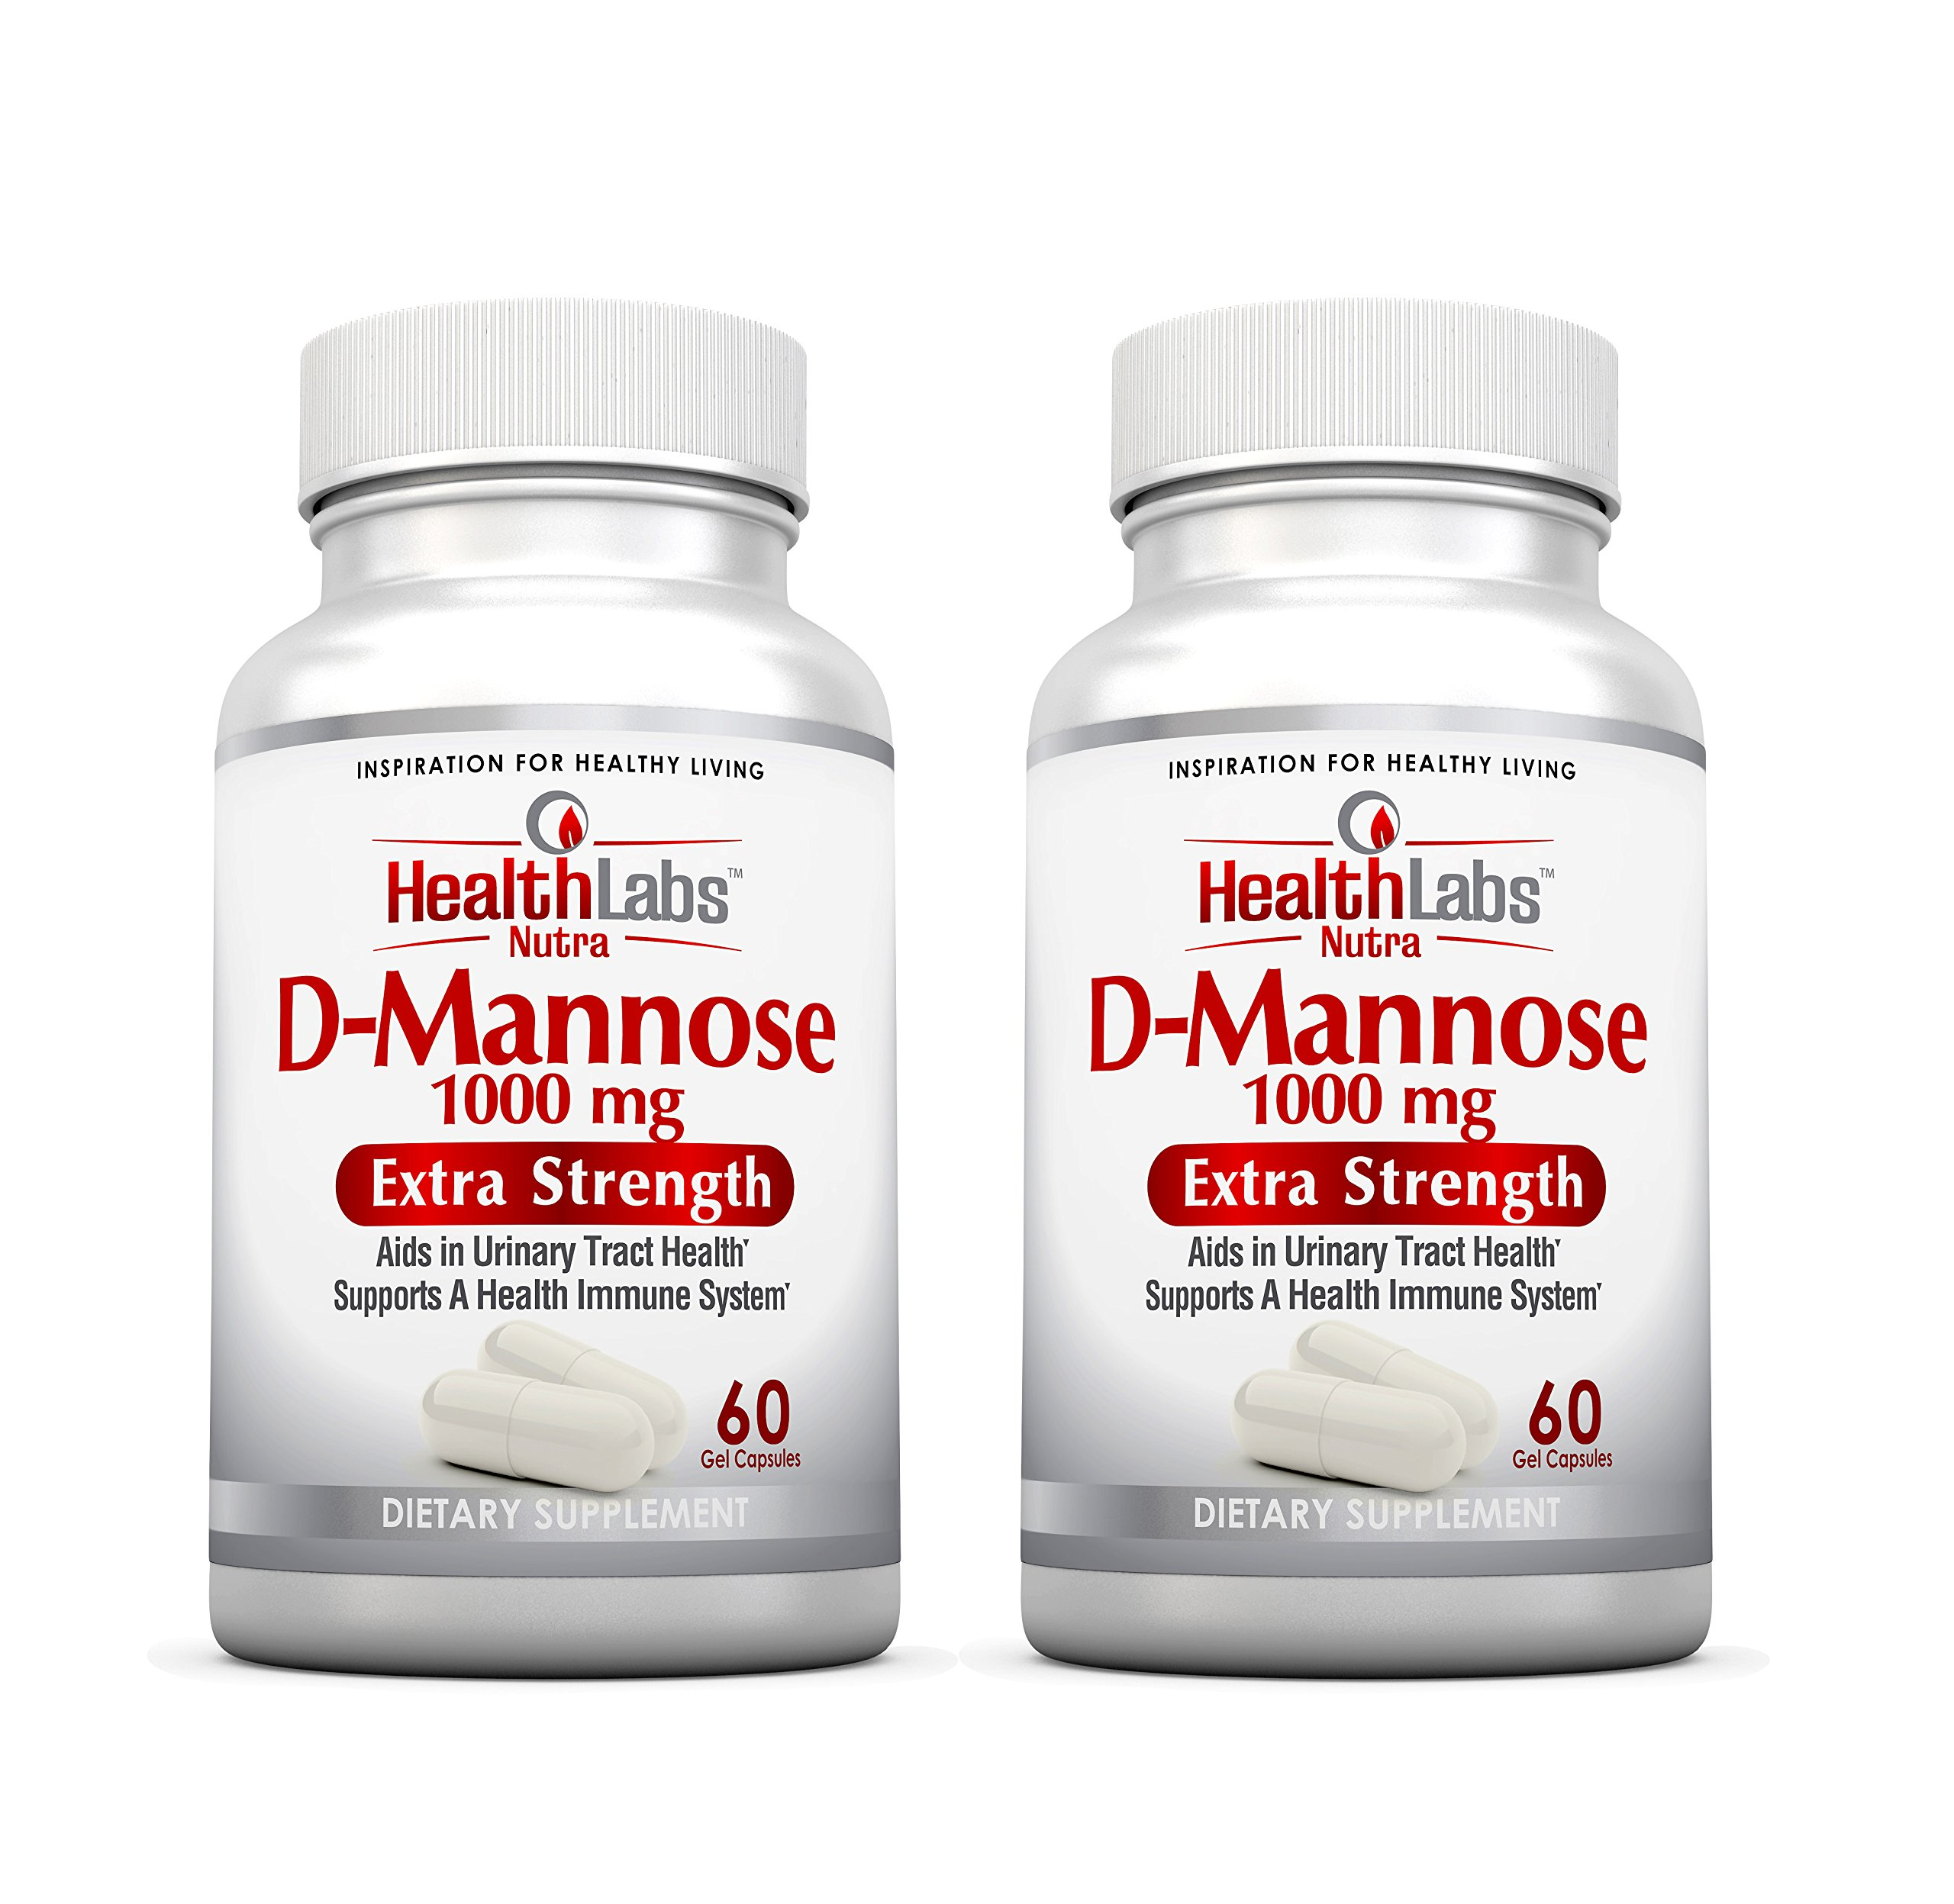 Health Labs Nutra D-Mannose 60-Day Supply 1,000mg - Fight Urinary Tract Infections & Promote a Healthy Bladder (Pack of 2) by Health Labs Nutra